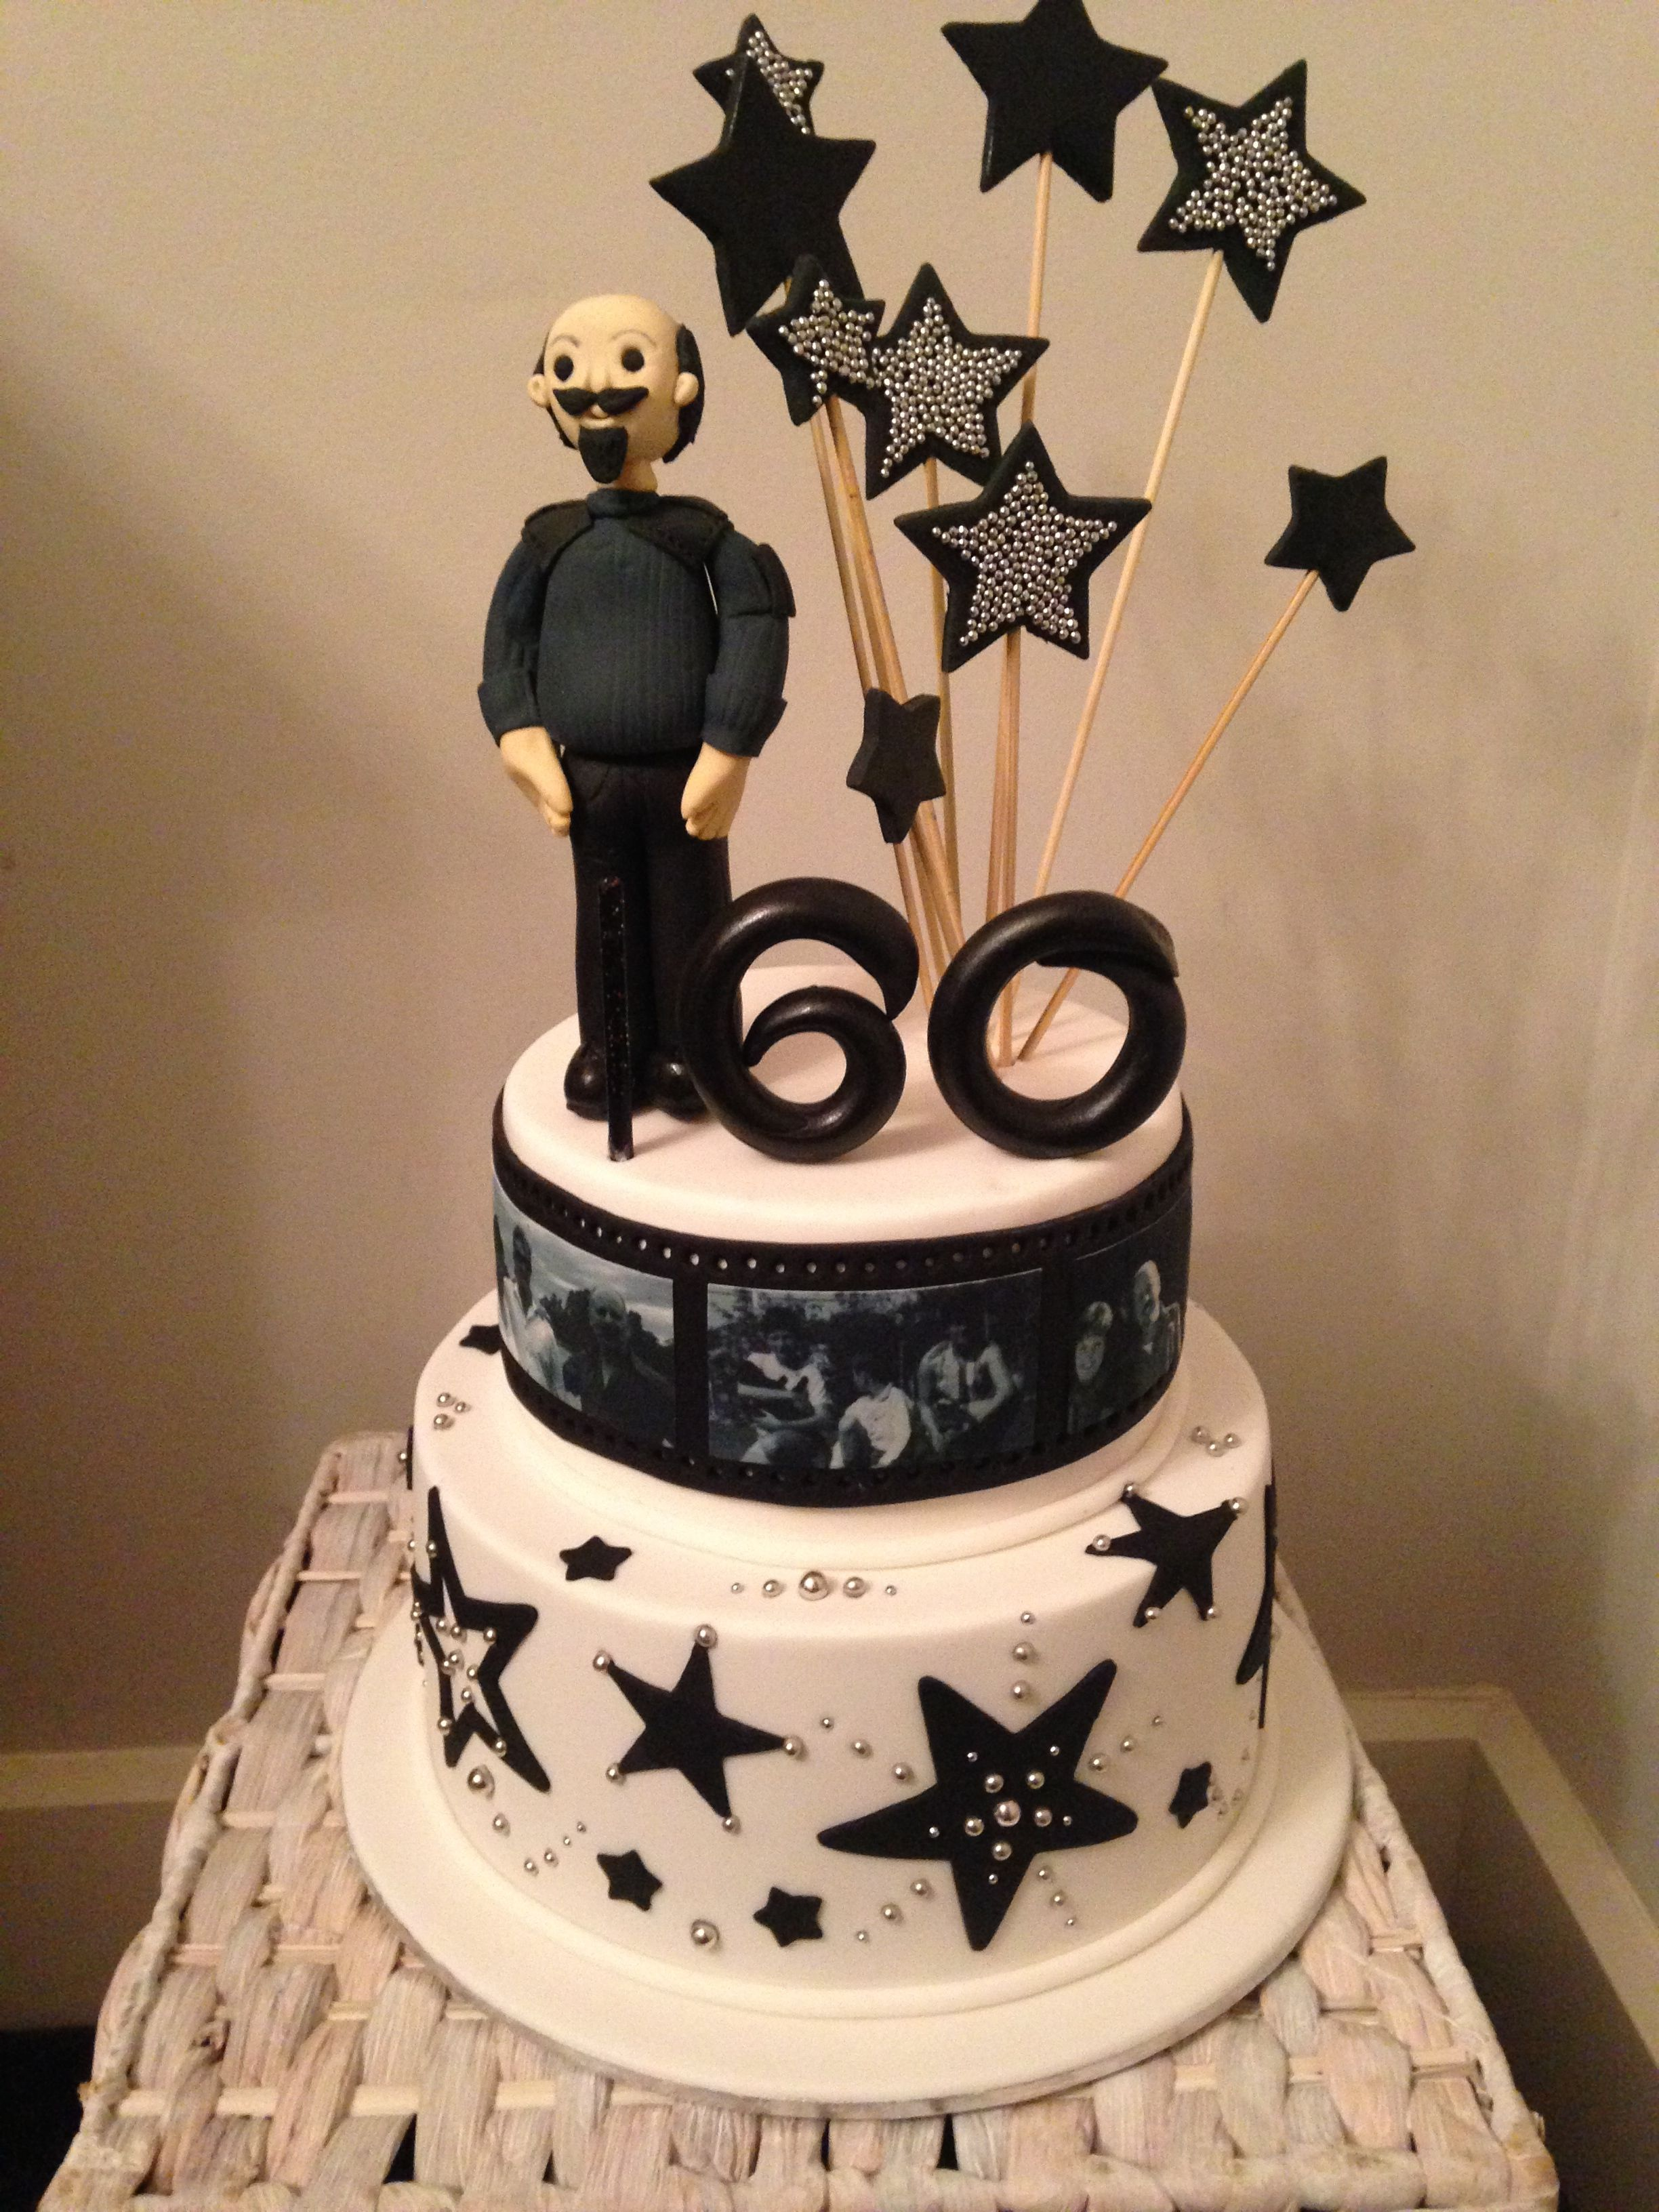 Male 60th Birthday Black And White Cake 60th Birthday Cakes Birthday Cakes For Men White Cake